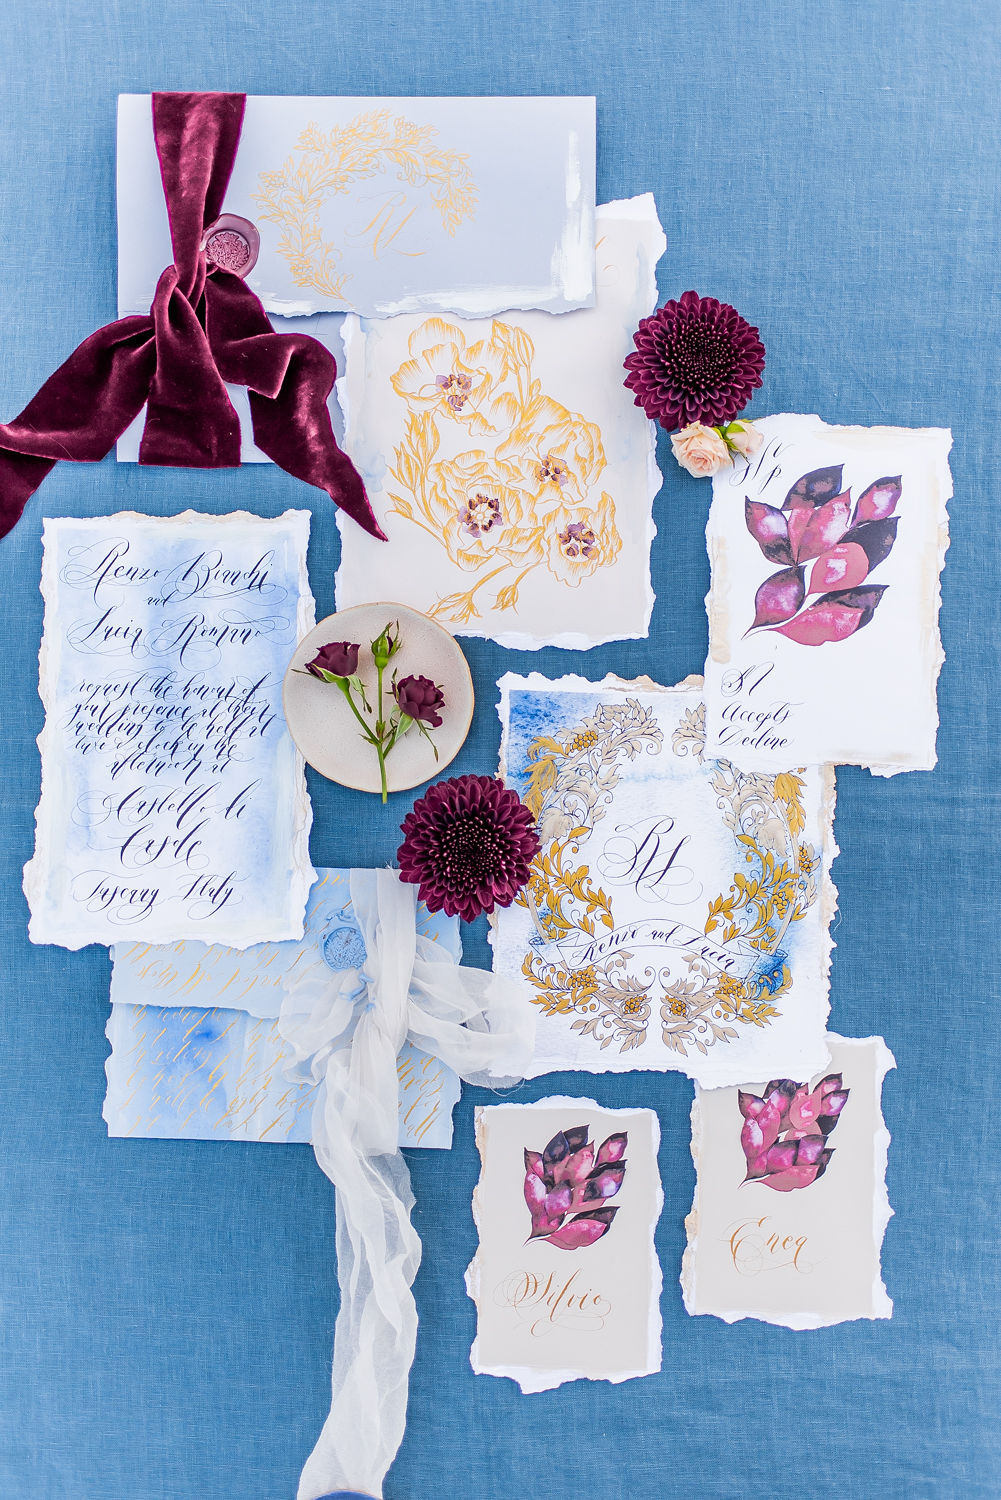 This is a flat lay image of wedding stationery, with blue and gold colours. It shows how to lay out and style your vow renewal stationery